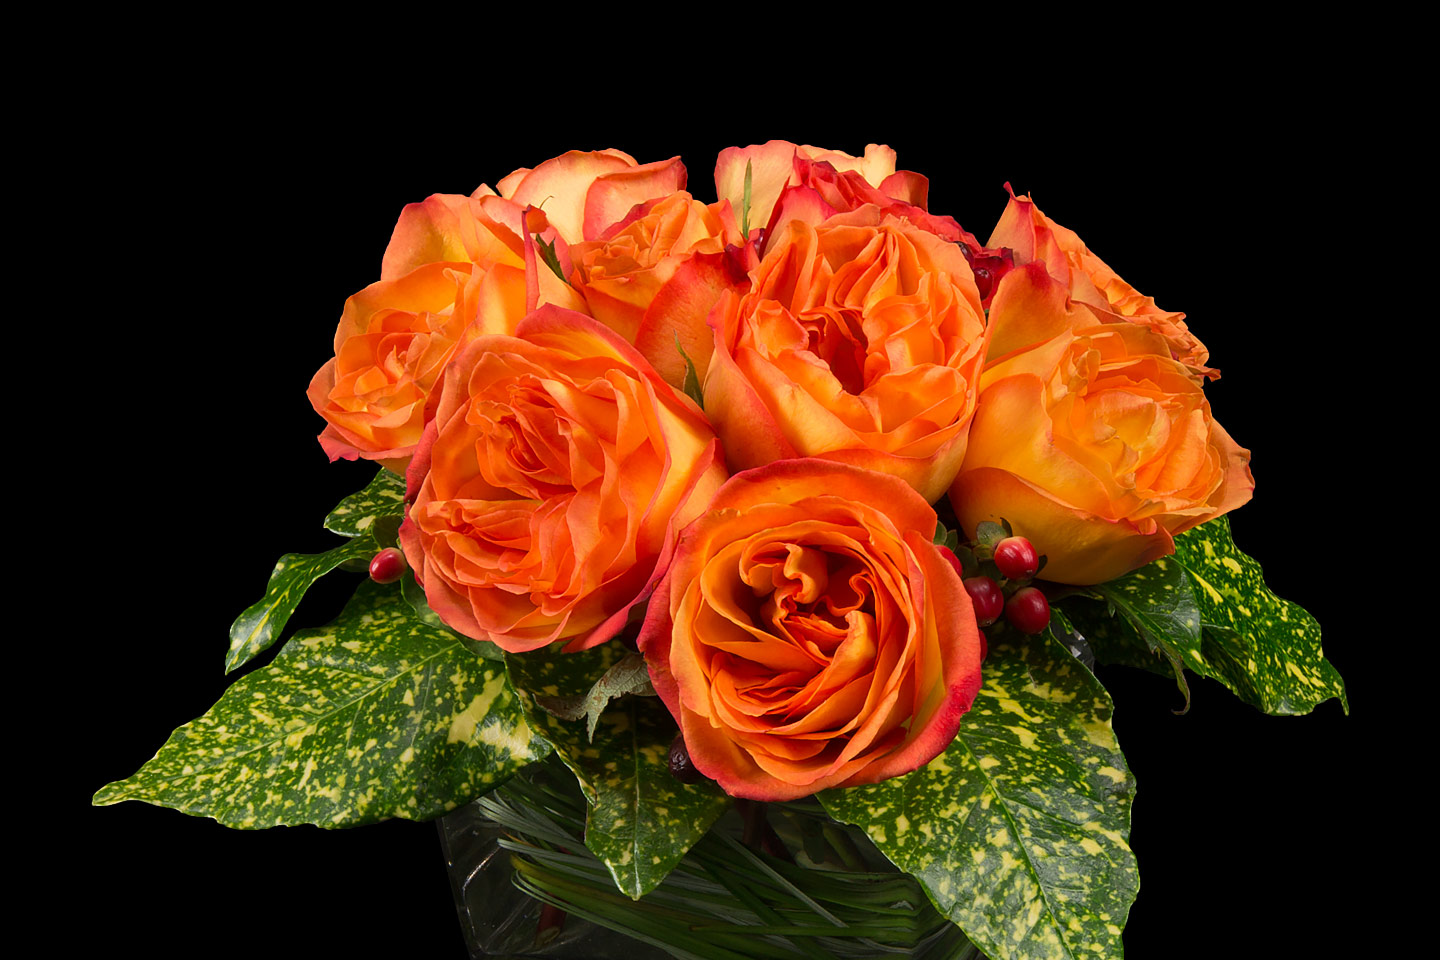 a bouquet of orange and yellow roses in a petite vase with pothos leaves, photographed by Jacob Rosenfeld